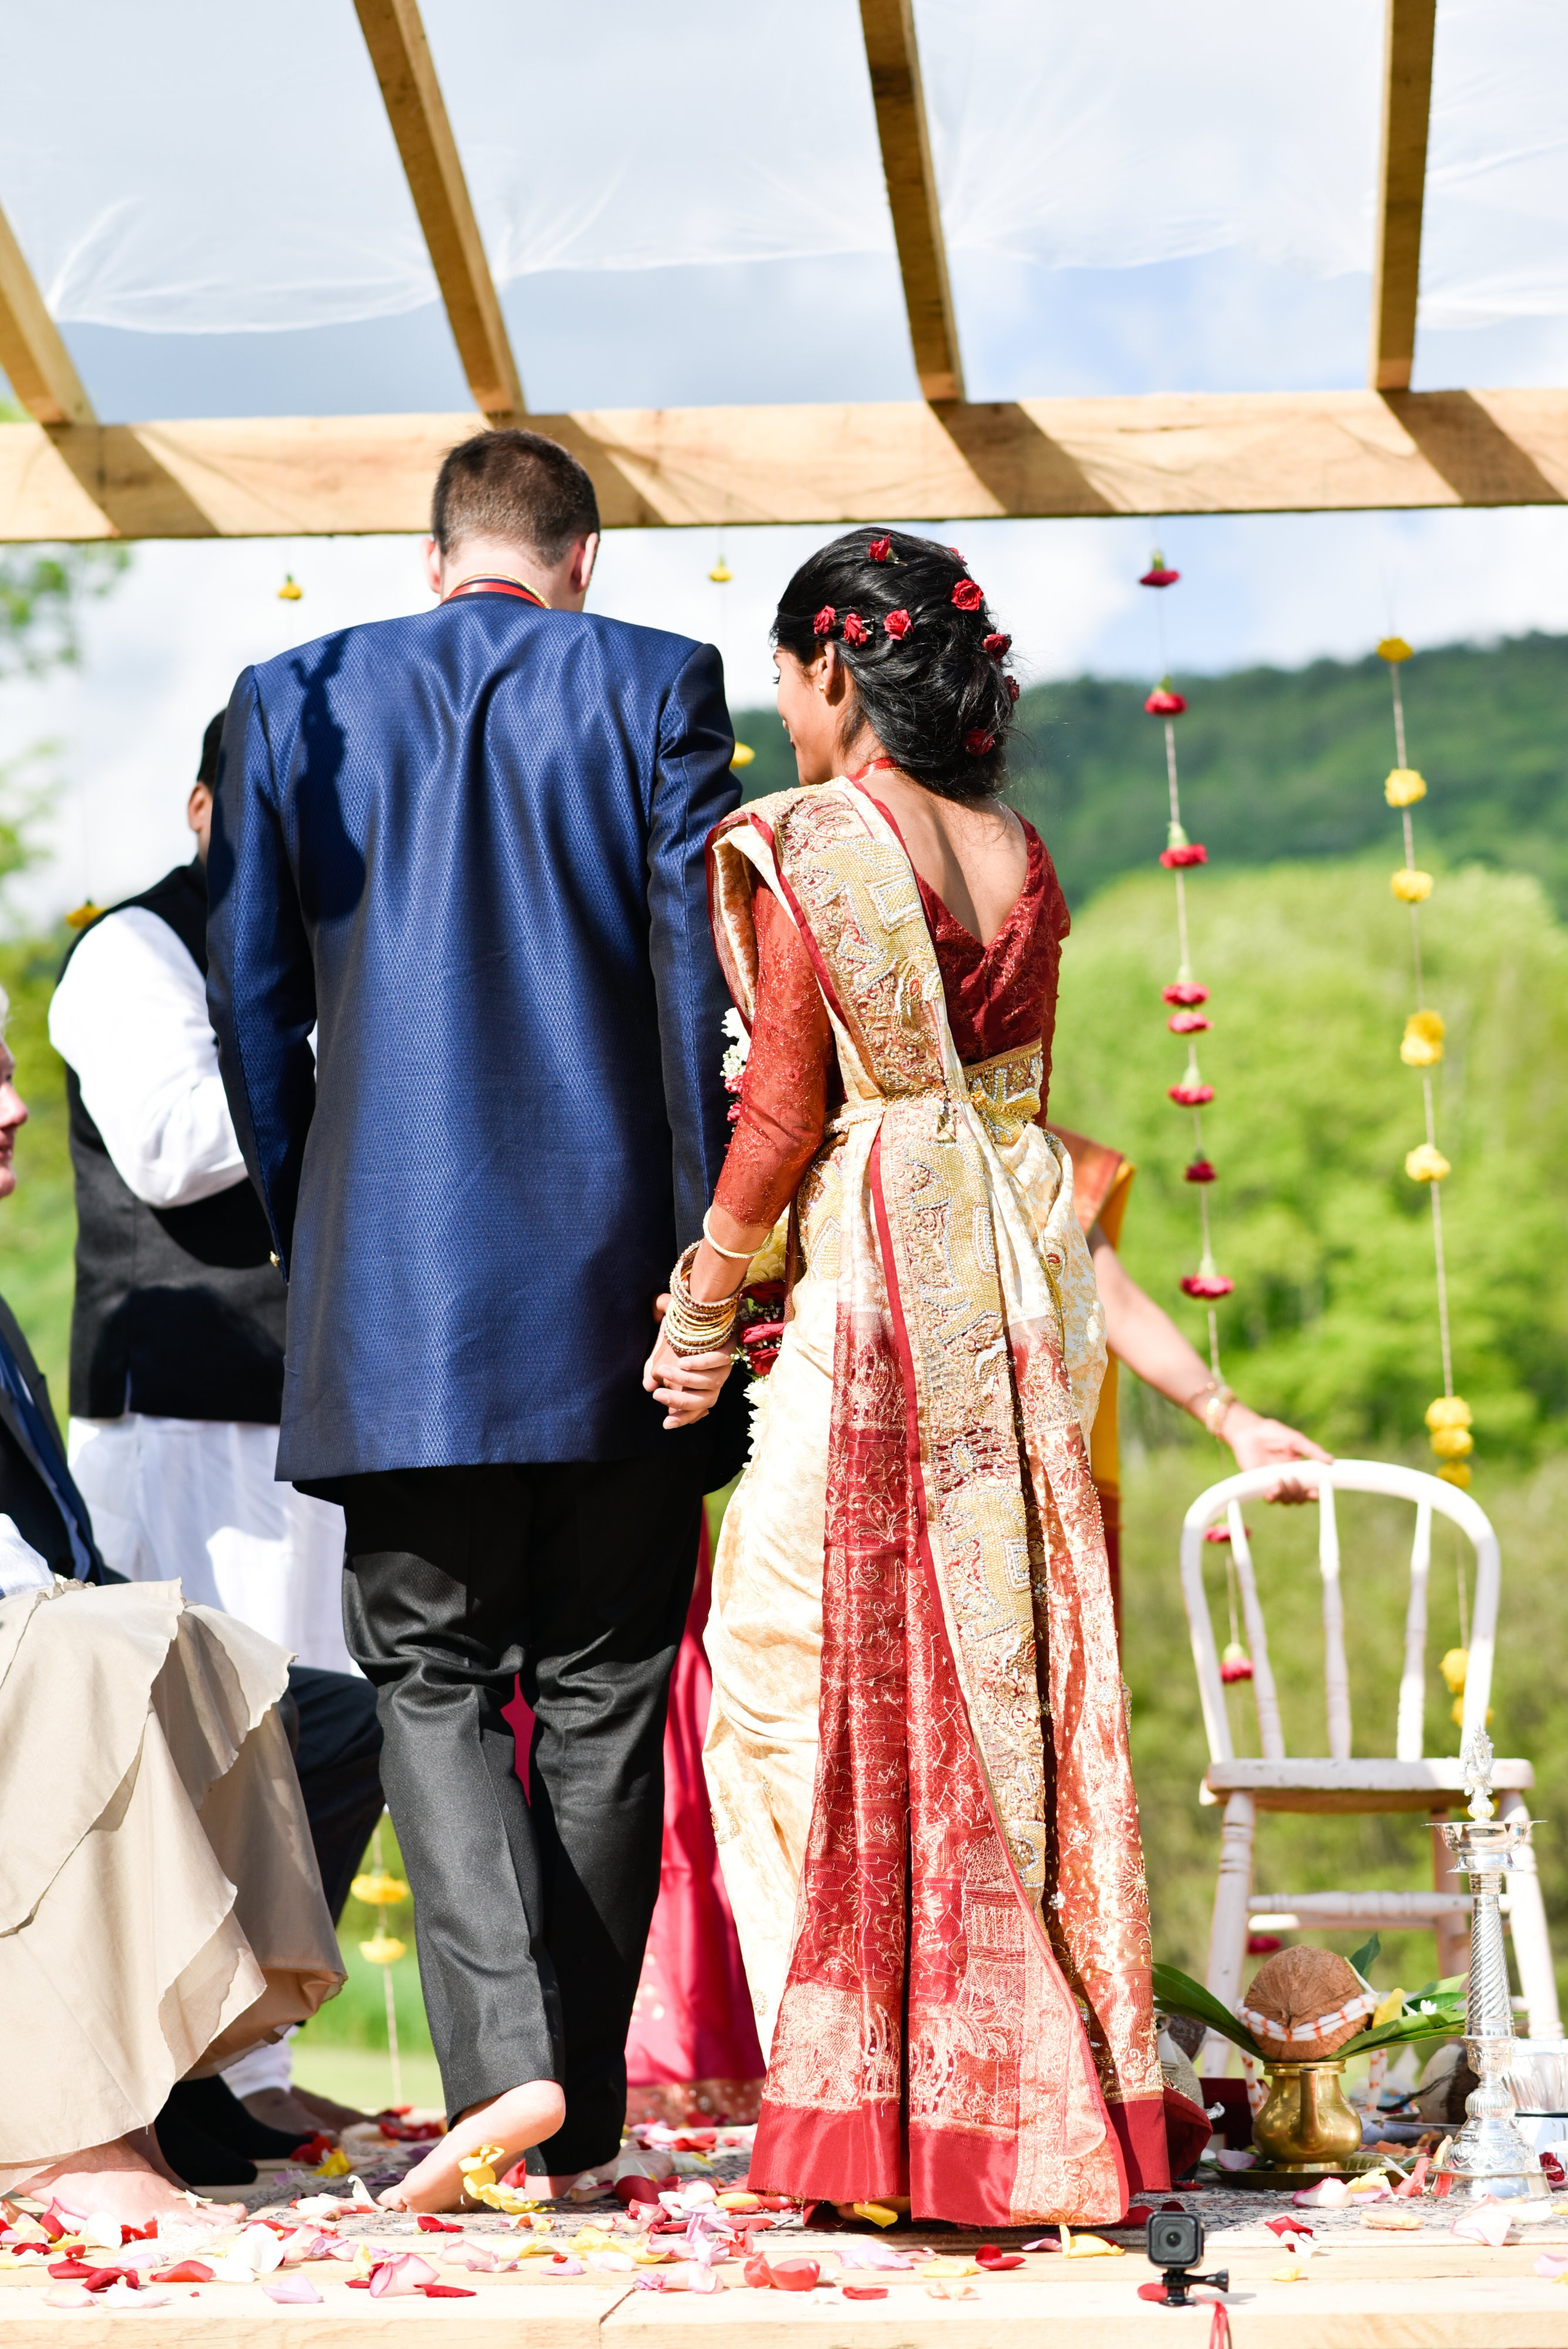 new york hindu personals Spiritual singles is the best dating site for spiritual, mindful singles for open minded, spiritual singles experience an evolved,  being new to the whole.